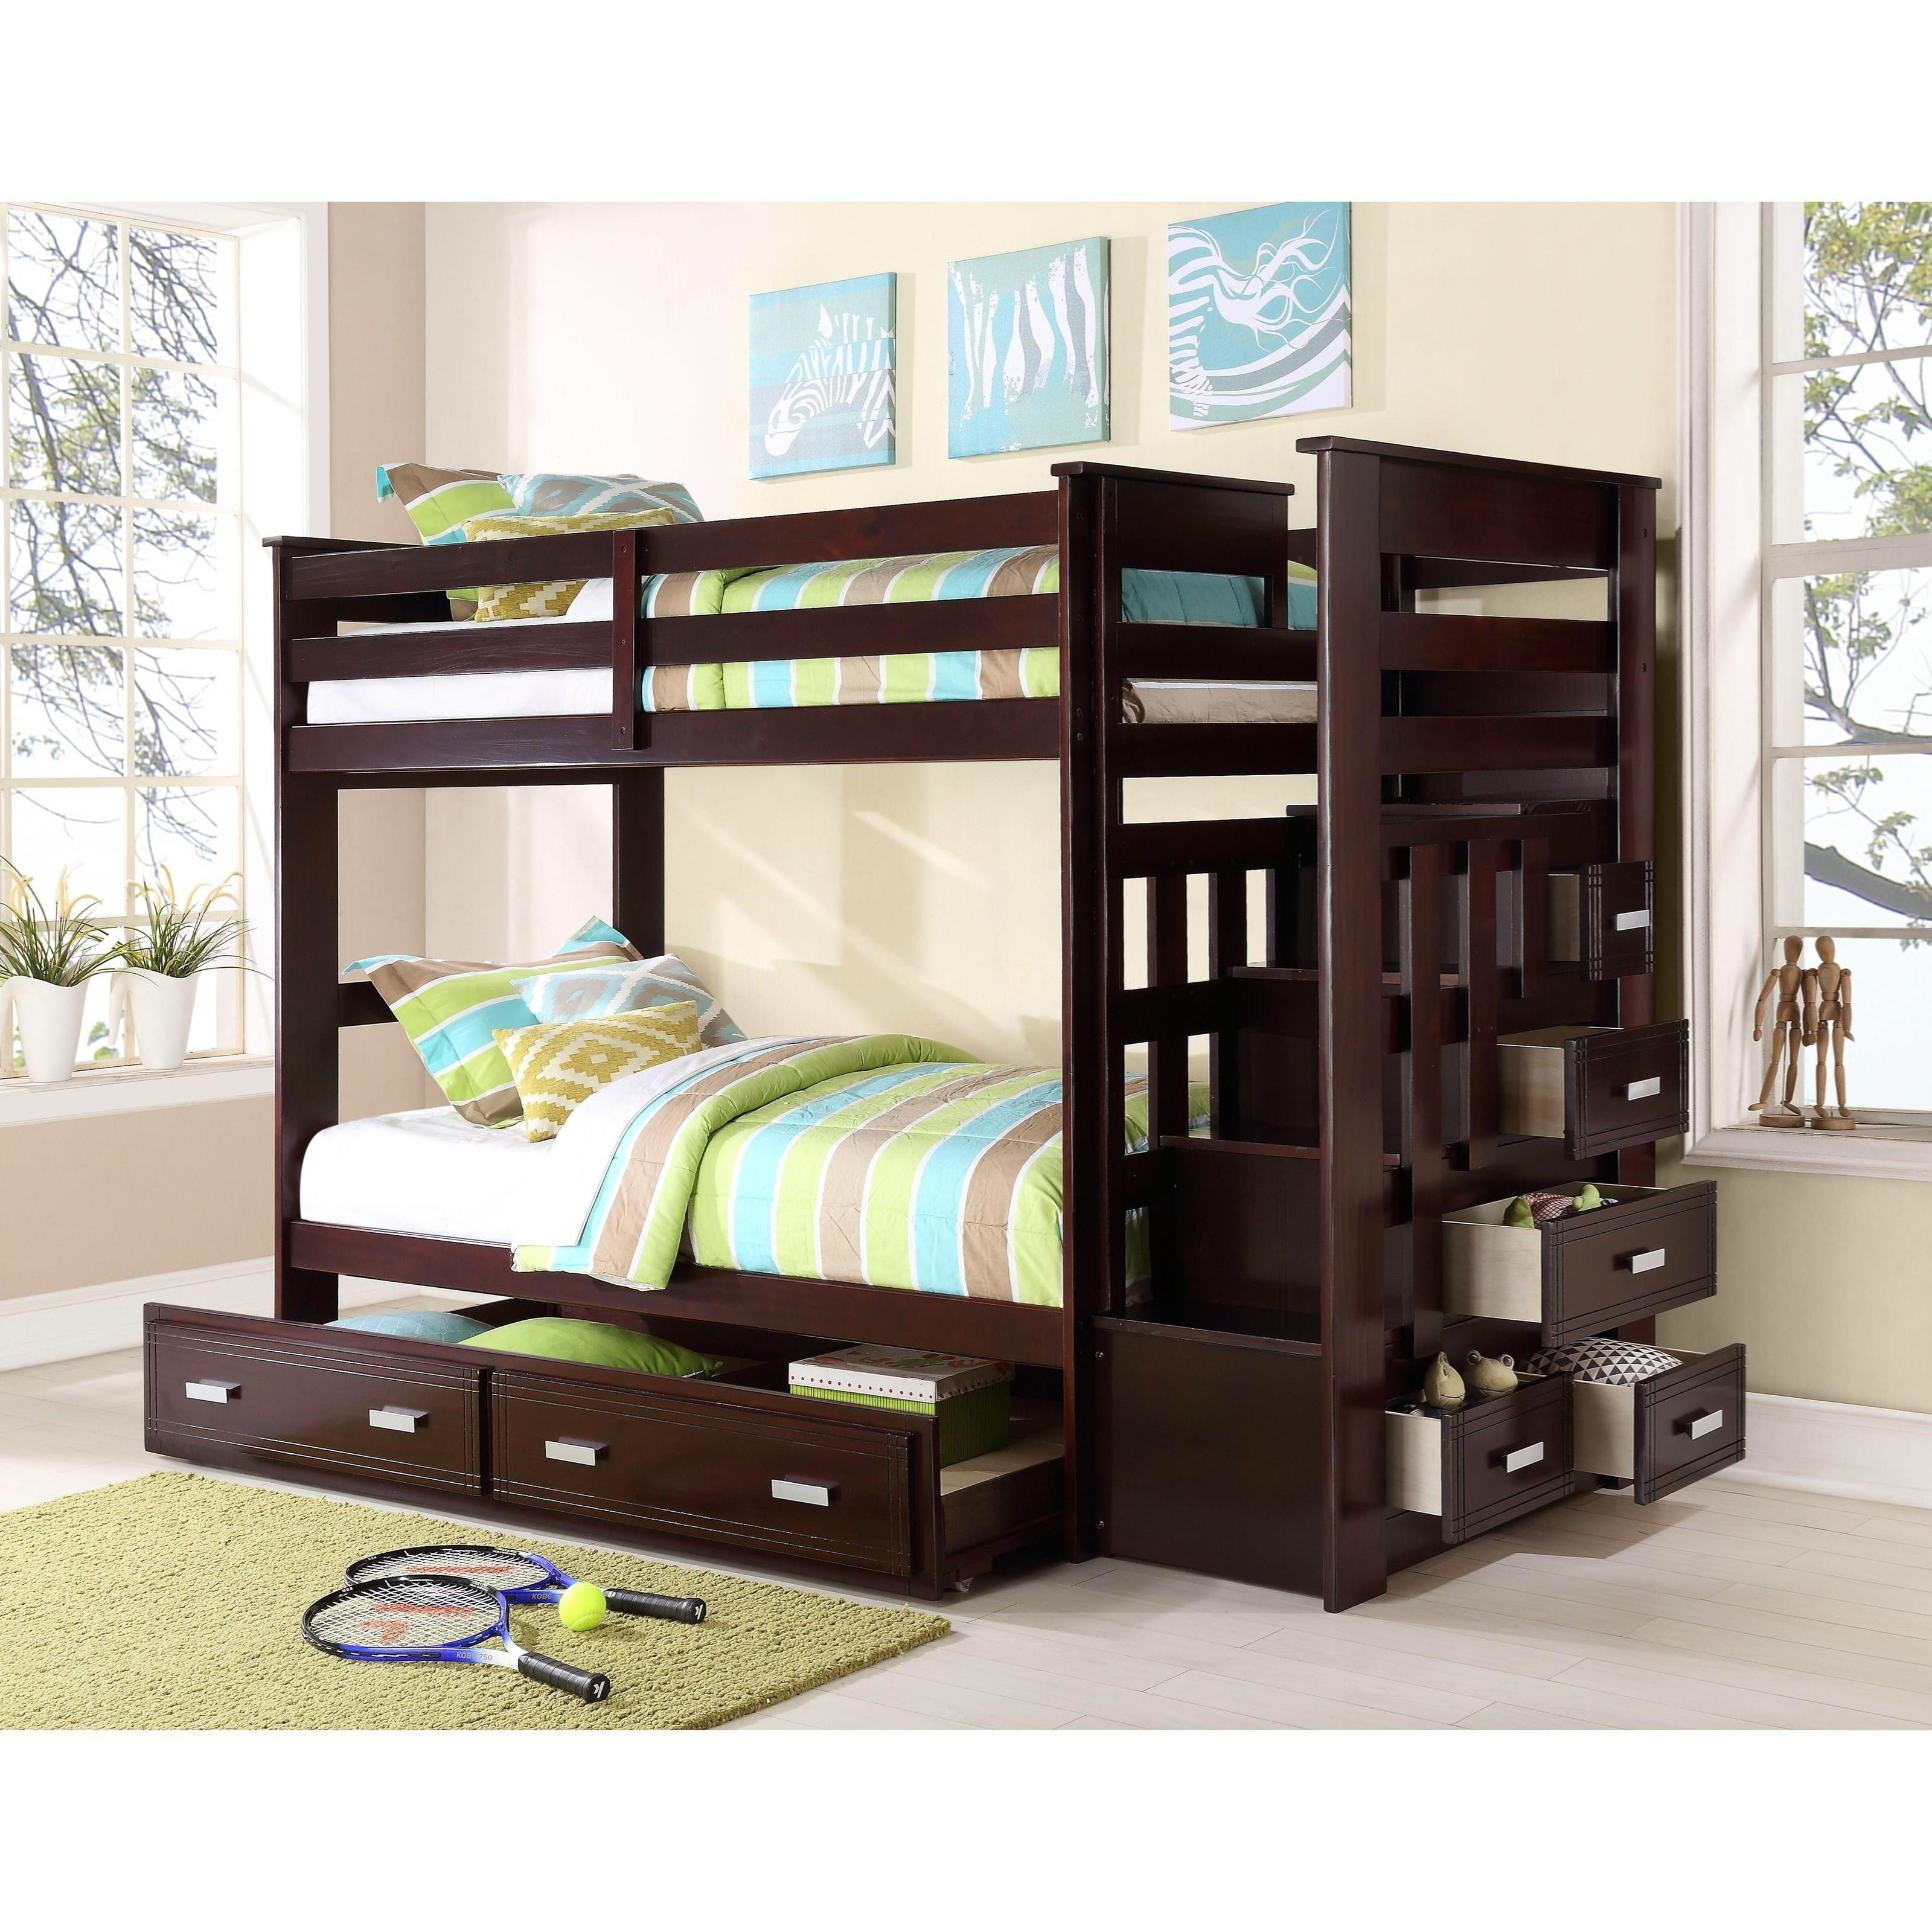 Allentown Twin/Twin Bunk Bed by Acme Furniture at Carolina Direct